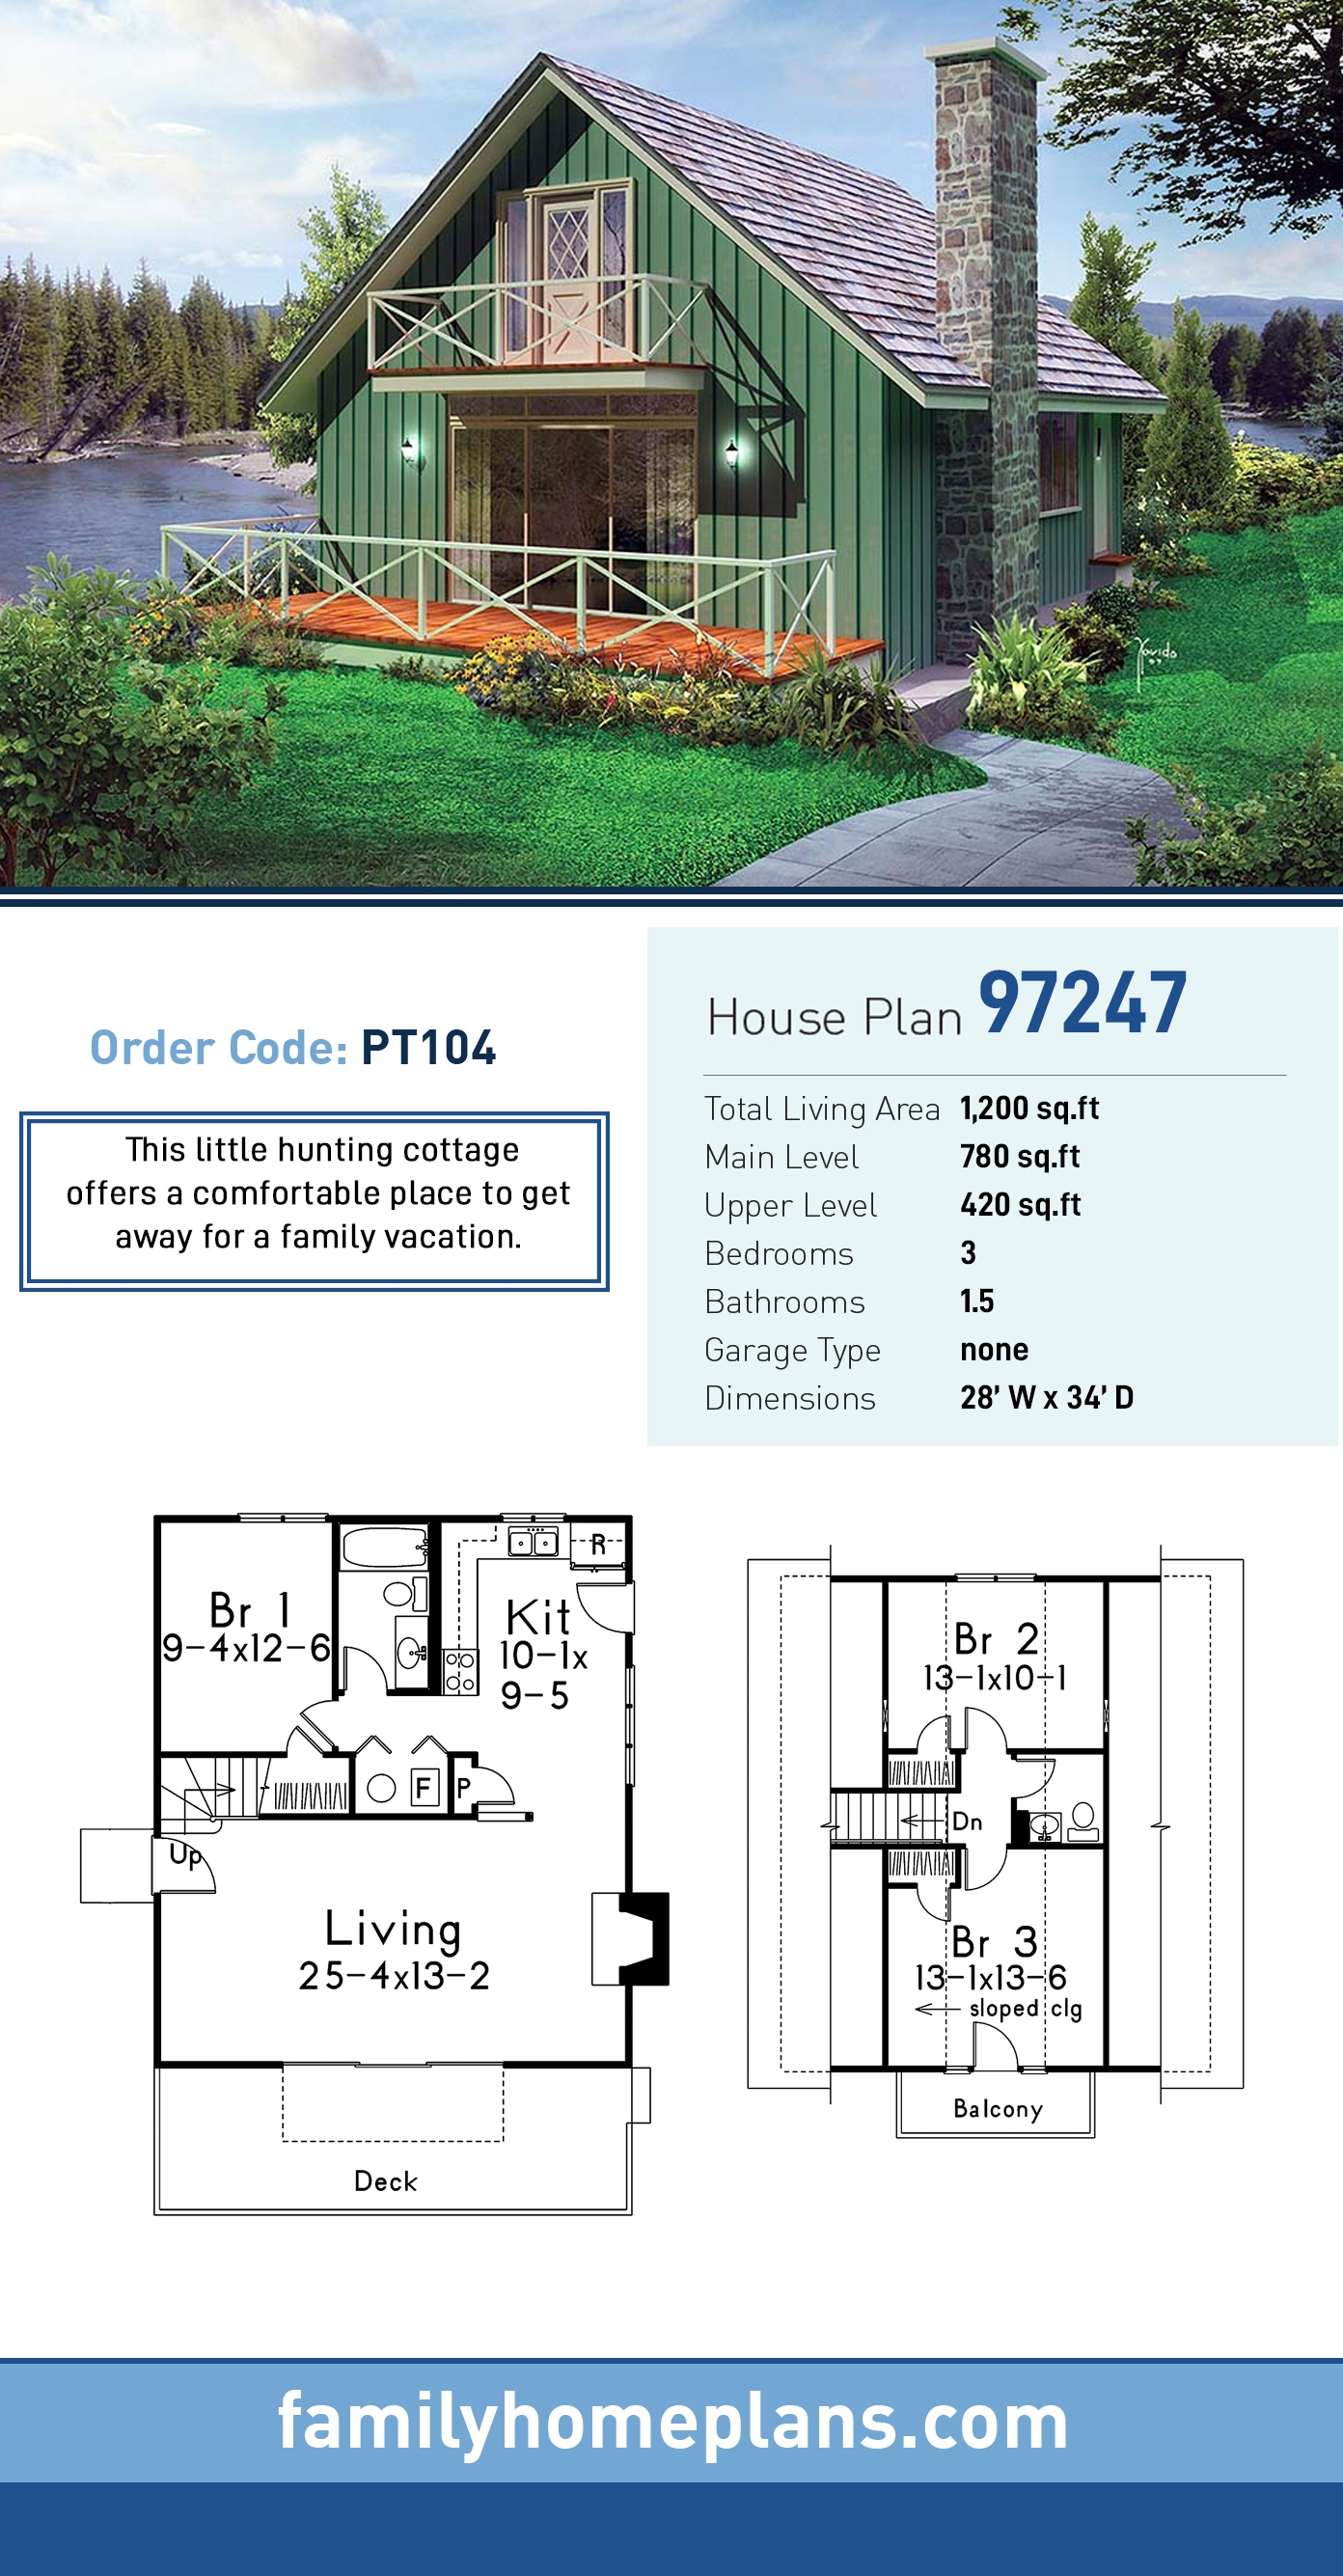 Cabin, Country, Southern, Traditional House Plan 97247 with 3 Beds, 2 Baths